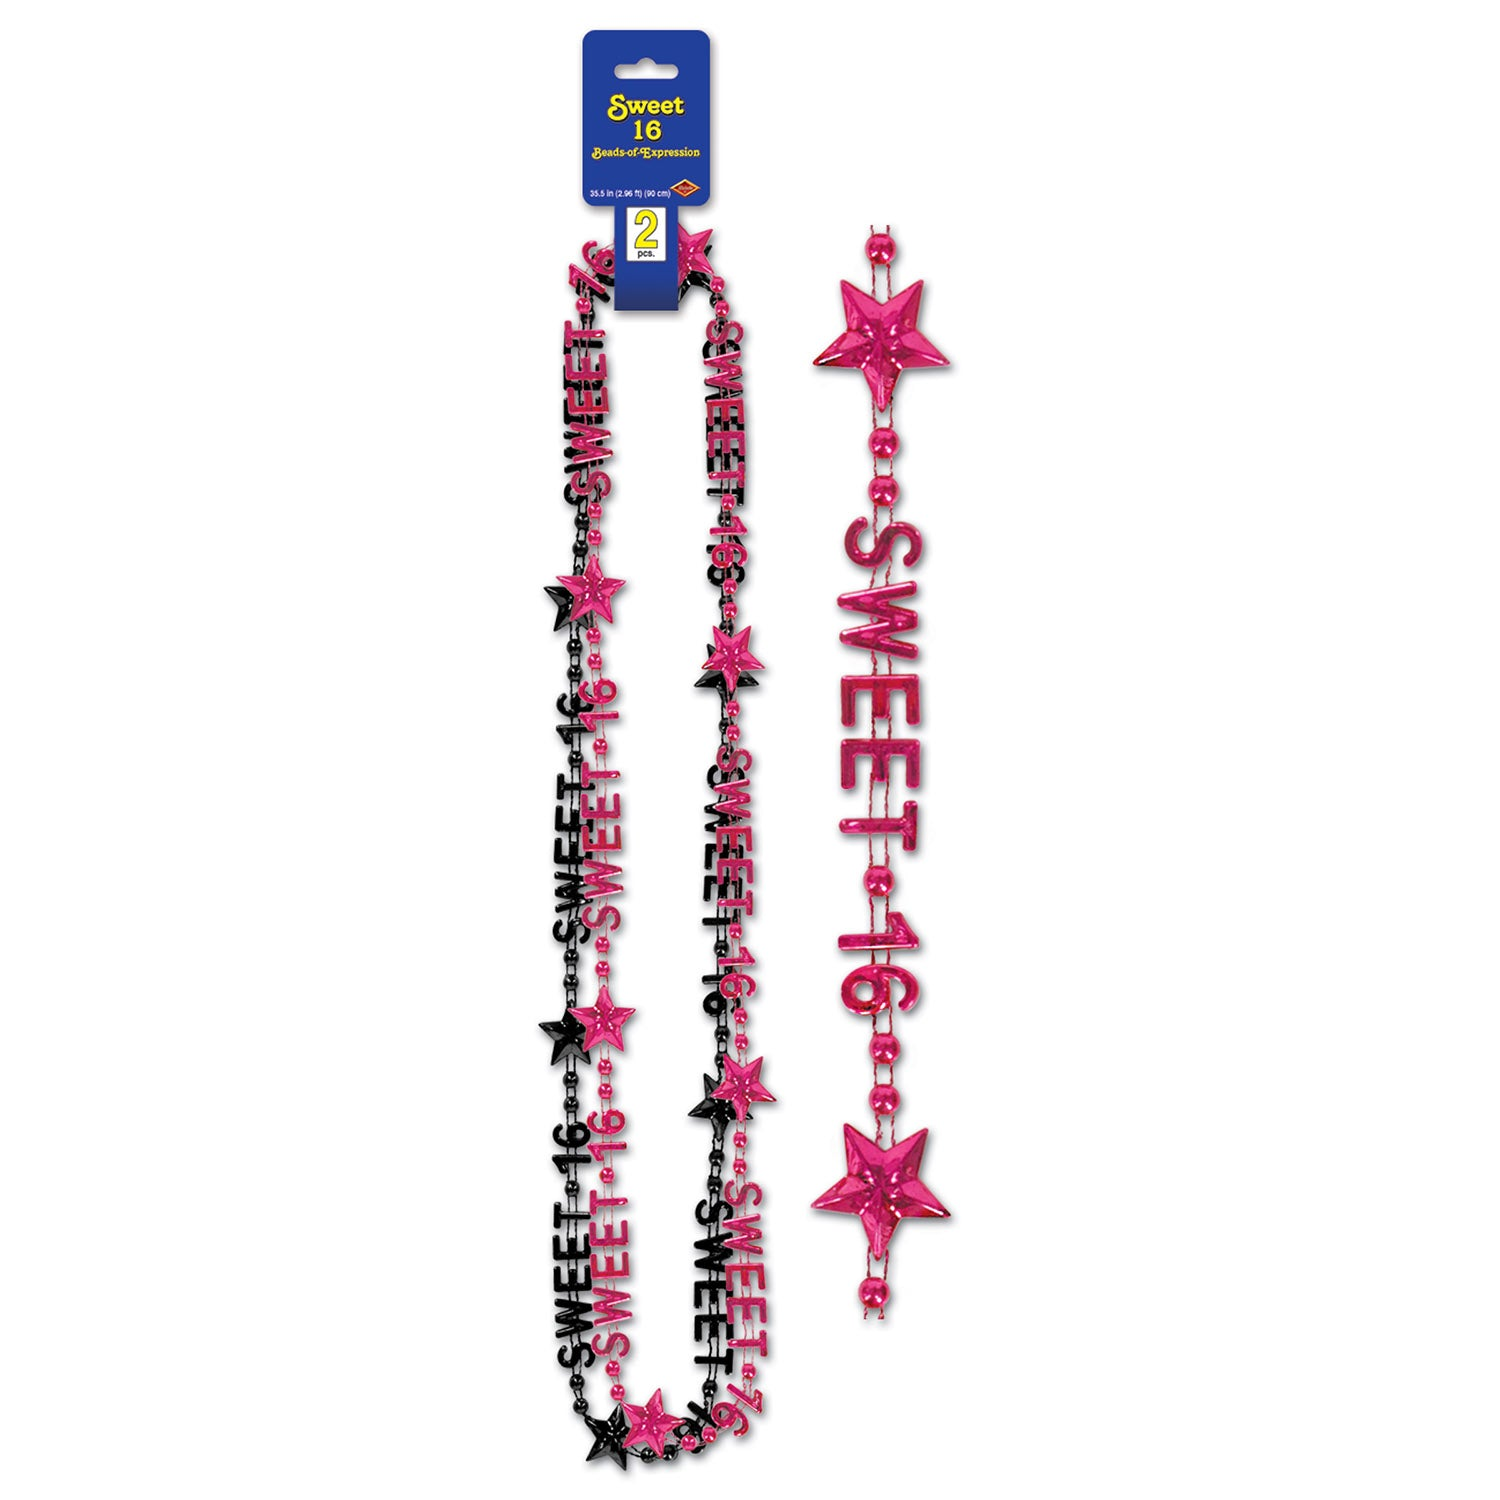 Sweet 16 Beads-Of-Expression (2/Card) by Beistle - Sweet 16 Birthday Decorations